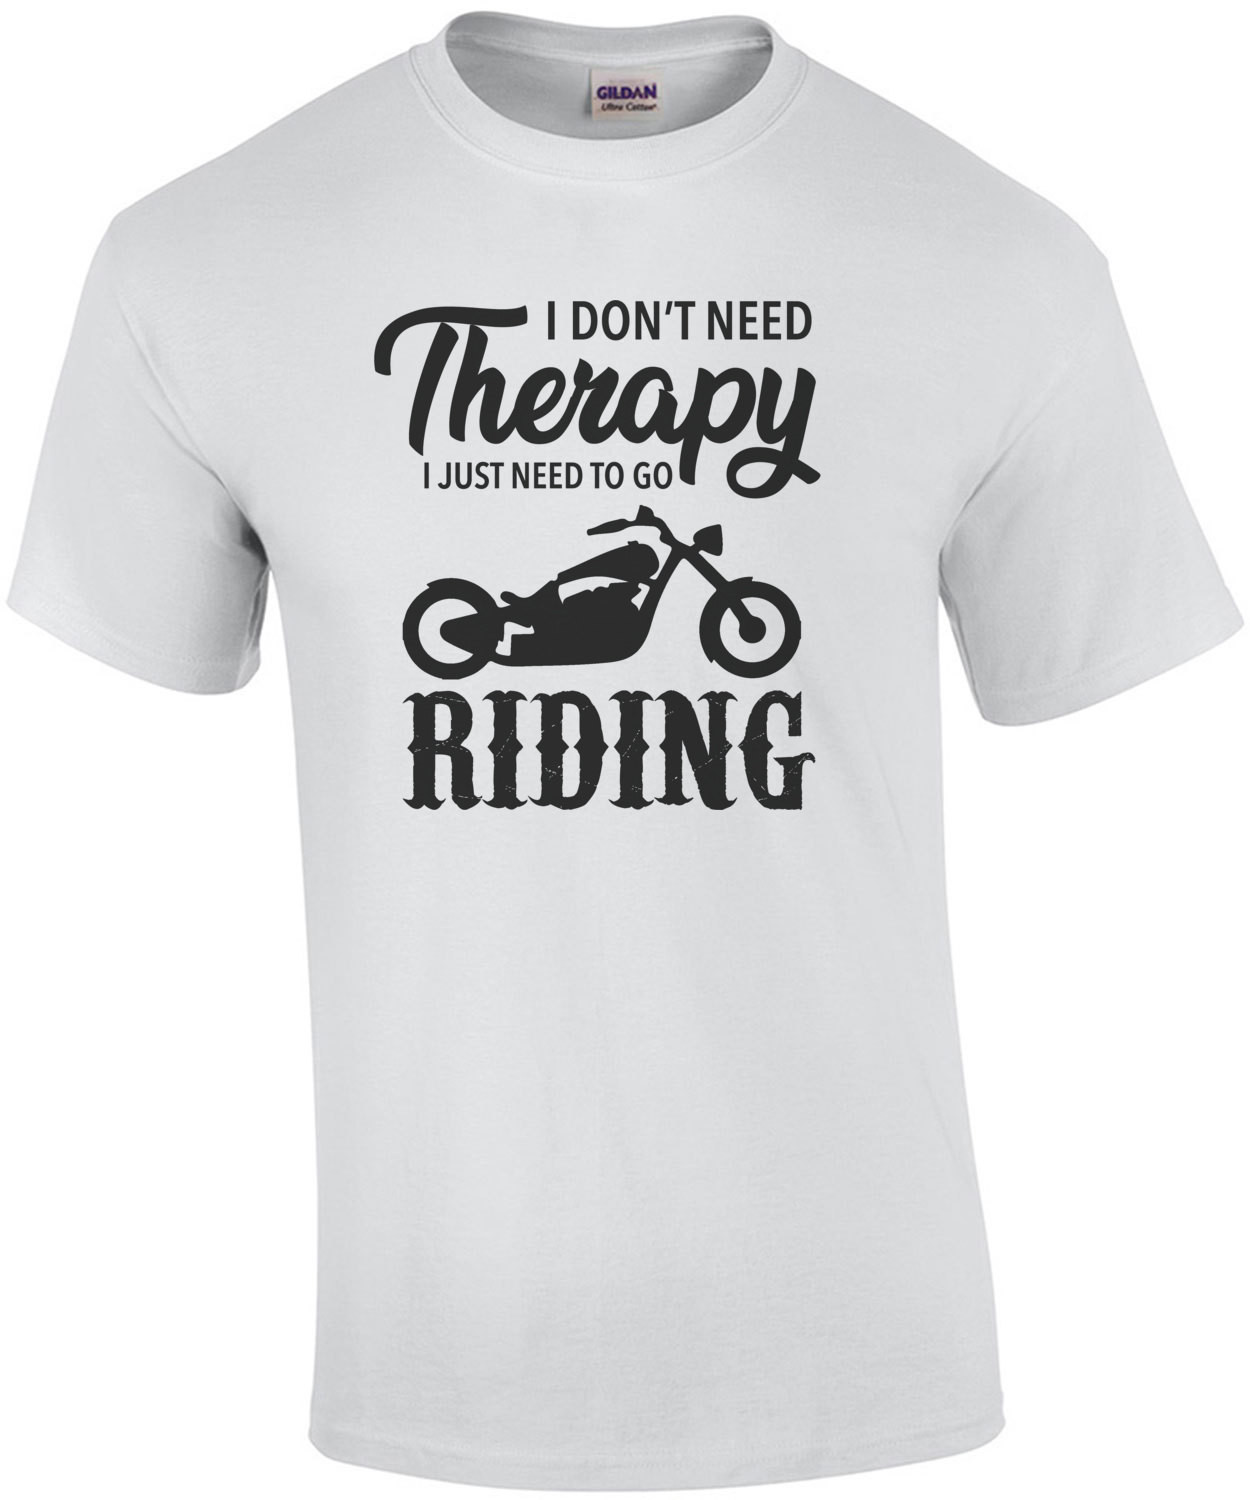 I don't need therapy - I just need to go riding - biker / motorcycle t-shirt